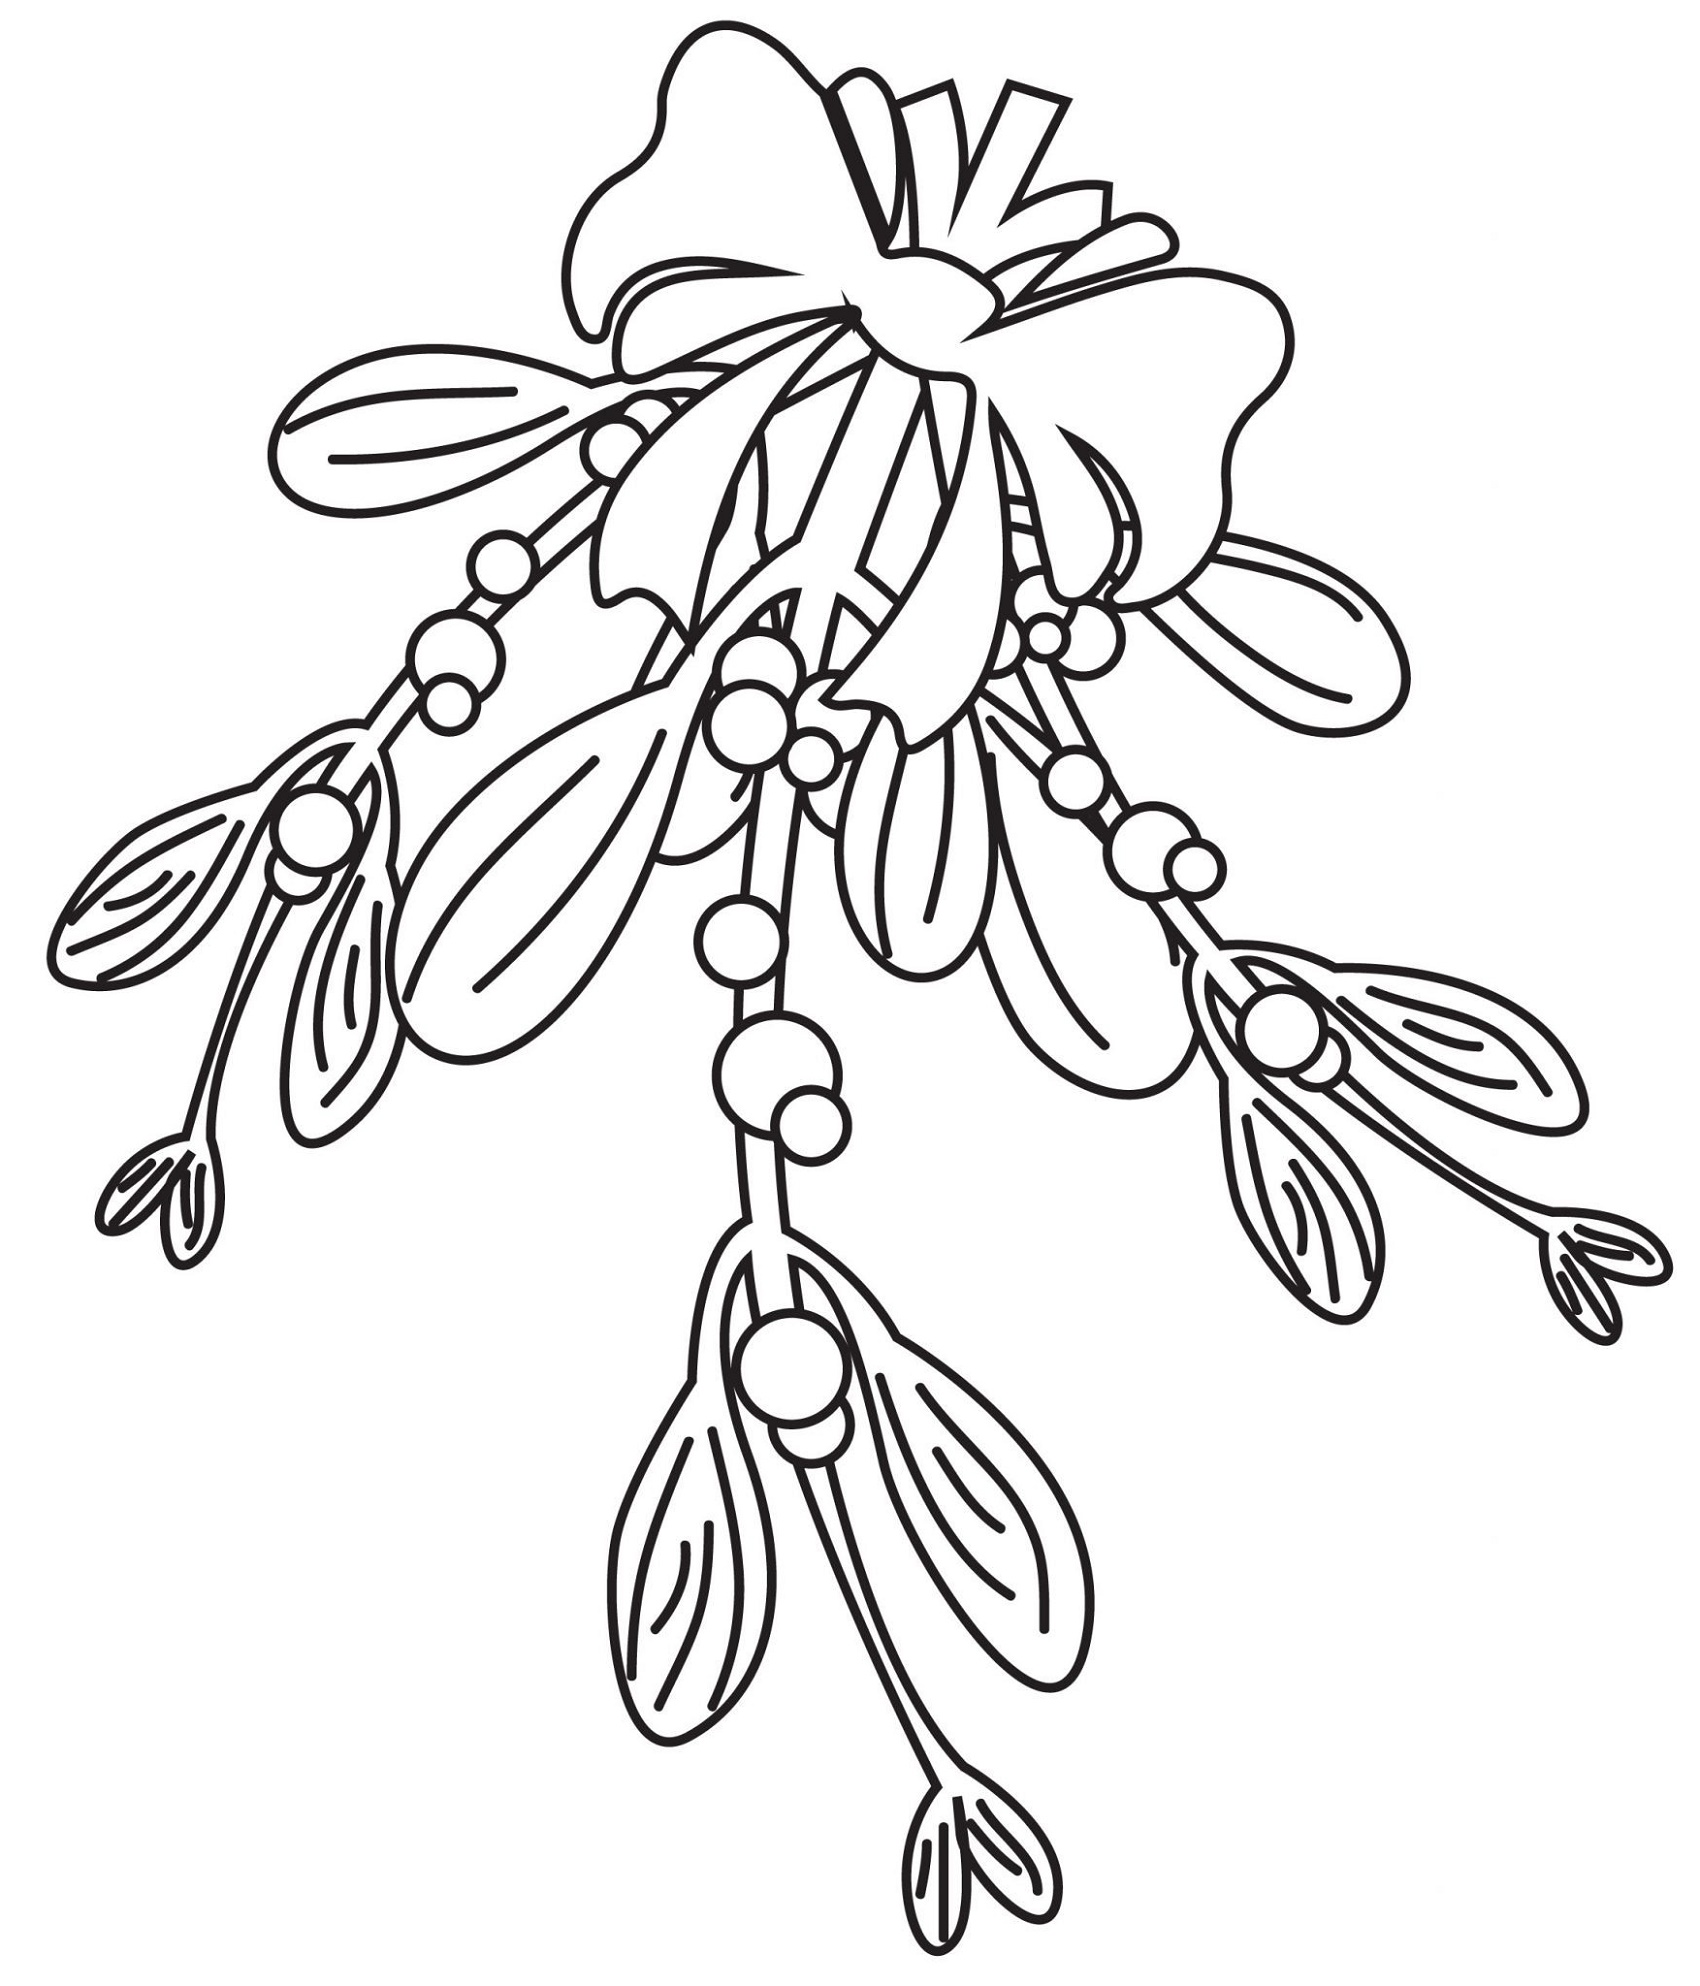 Mistletoe Coloring Pages For Kids